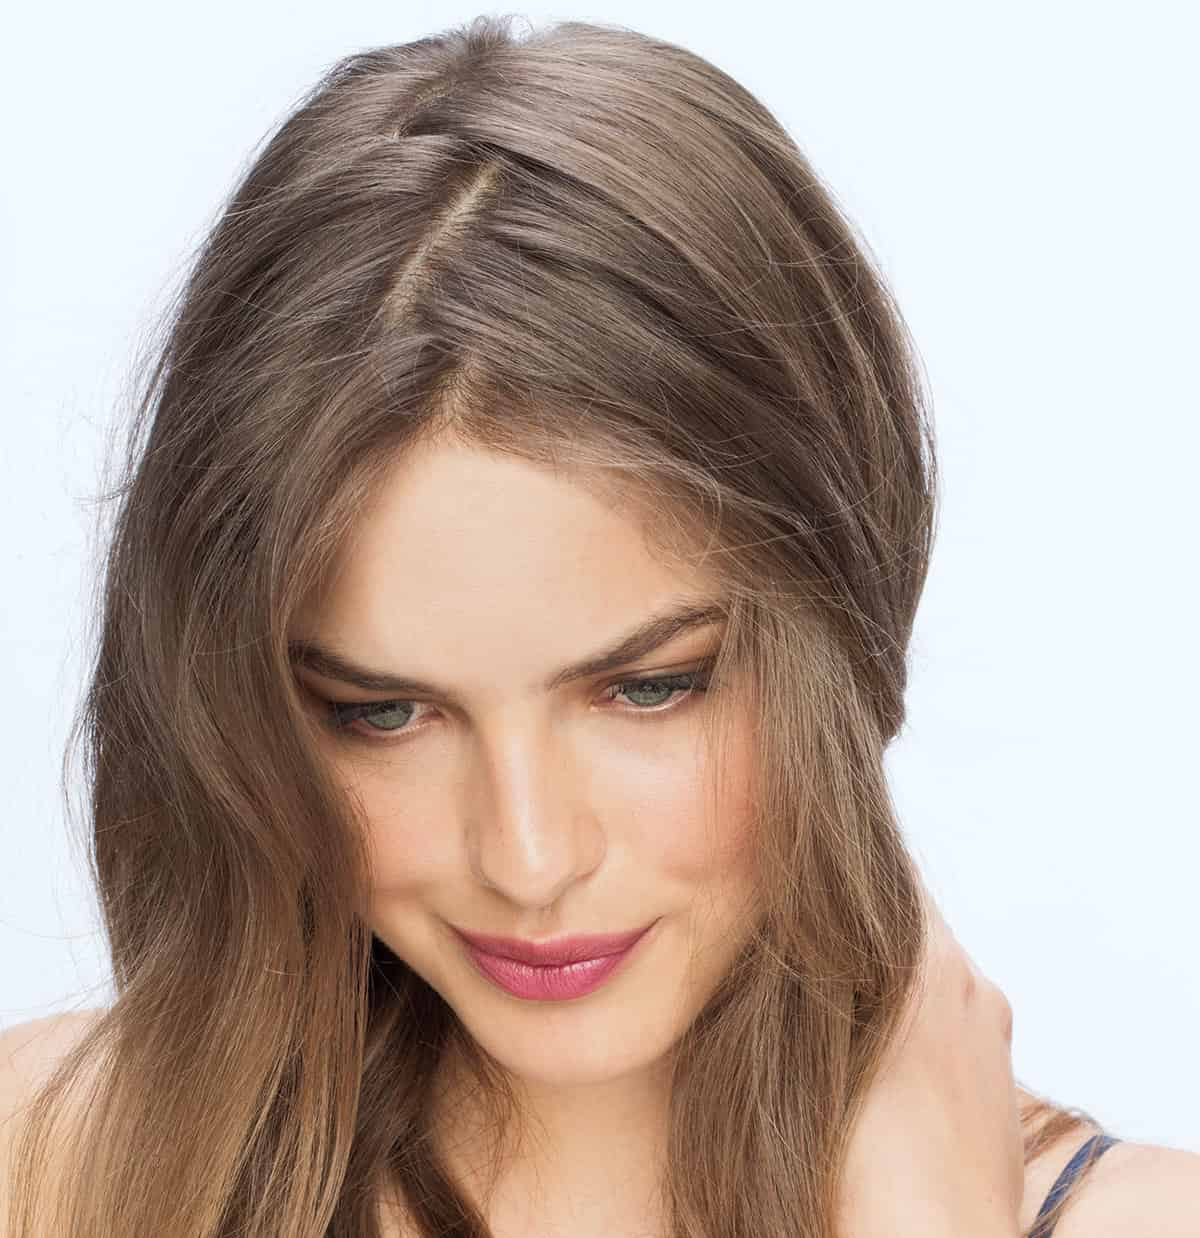 Image result for Parting Ways Hairstylehair style